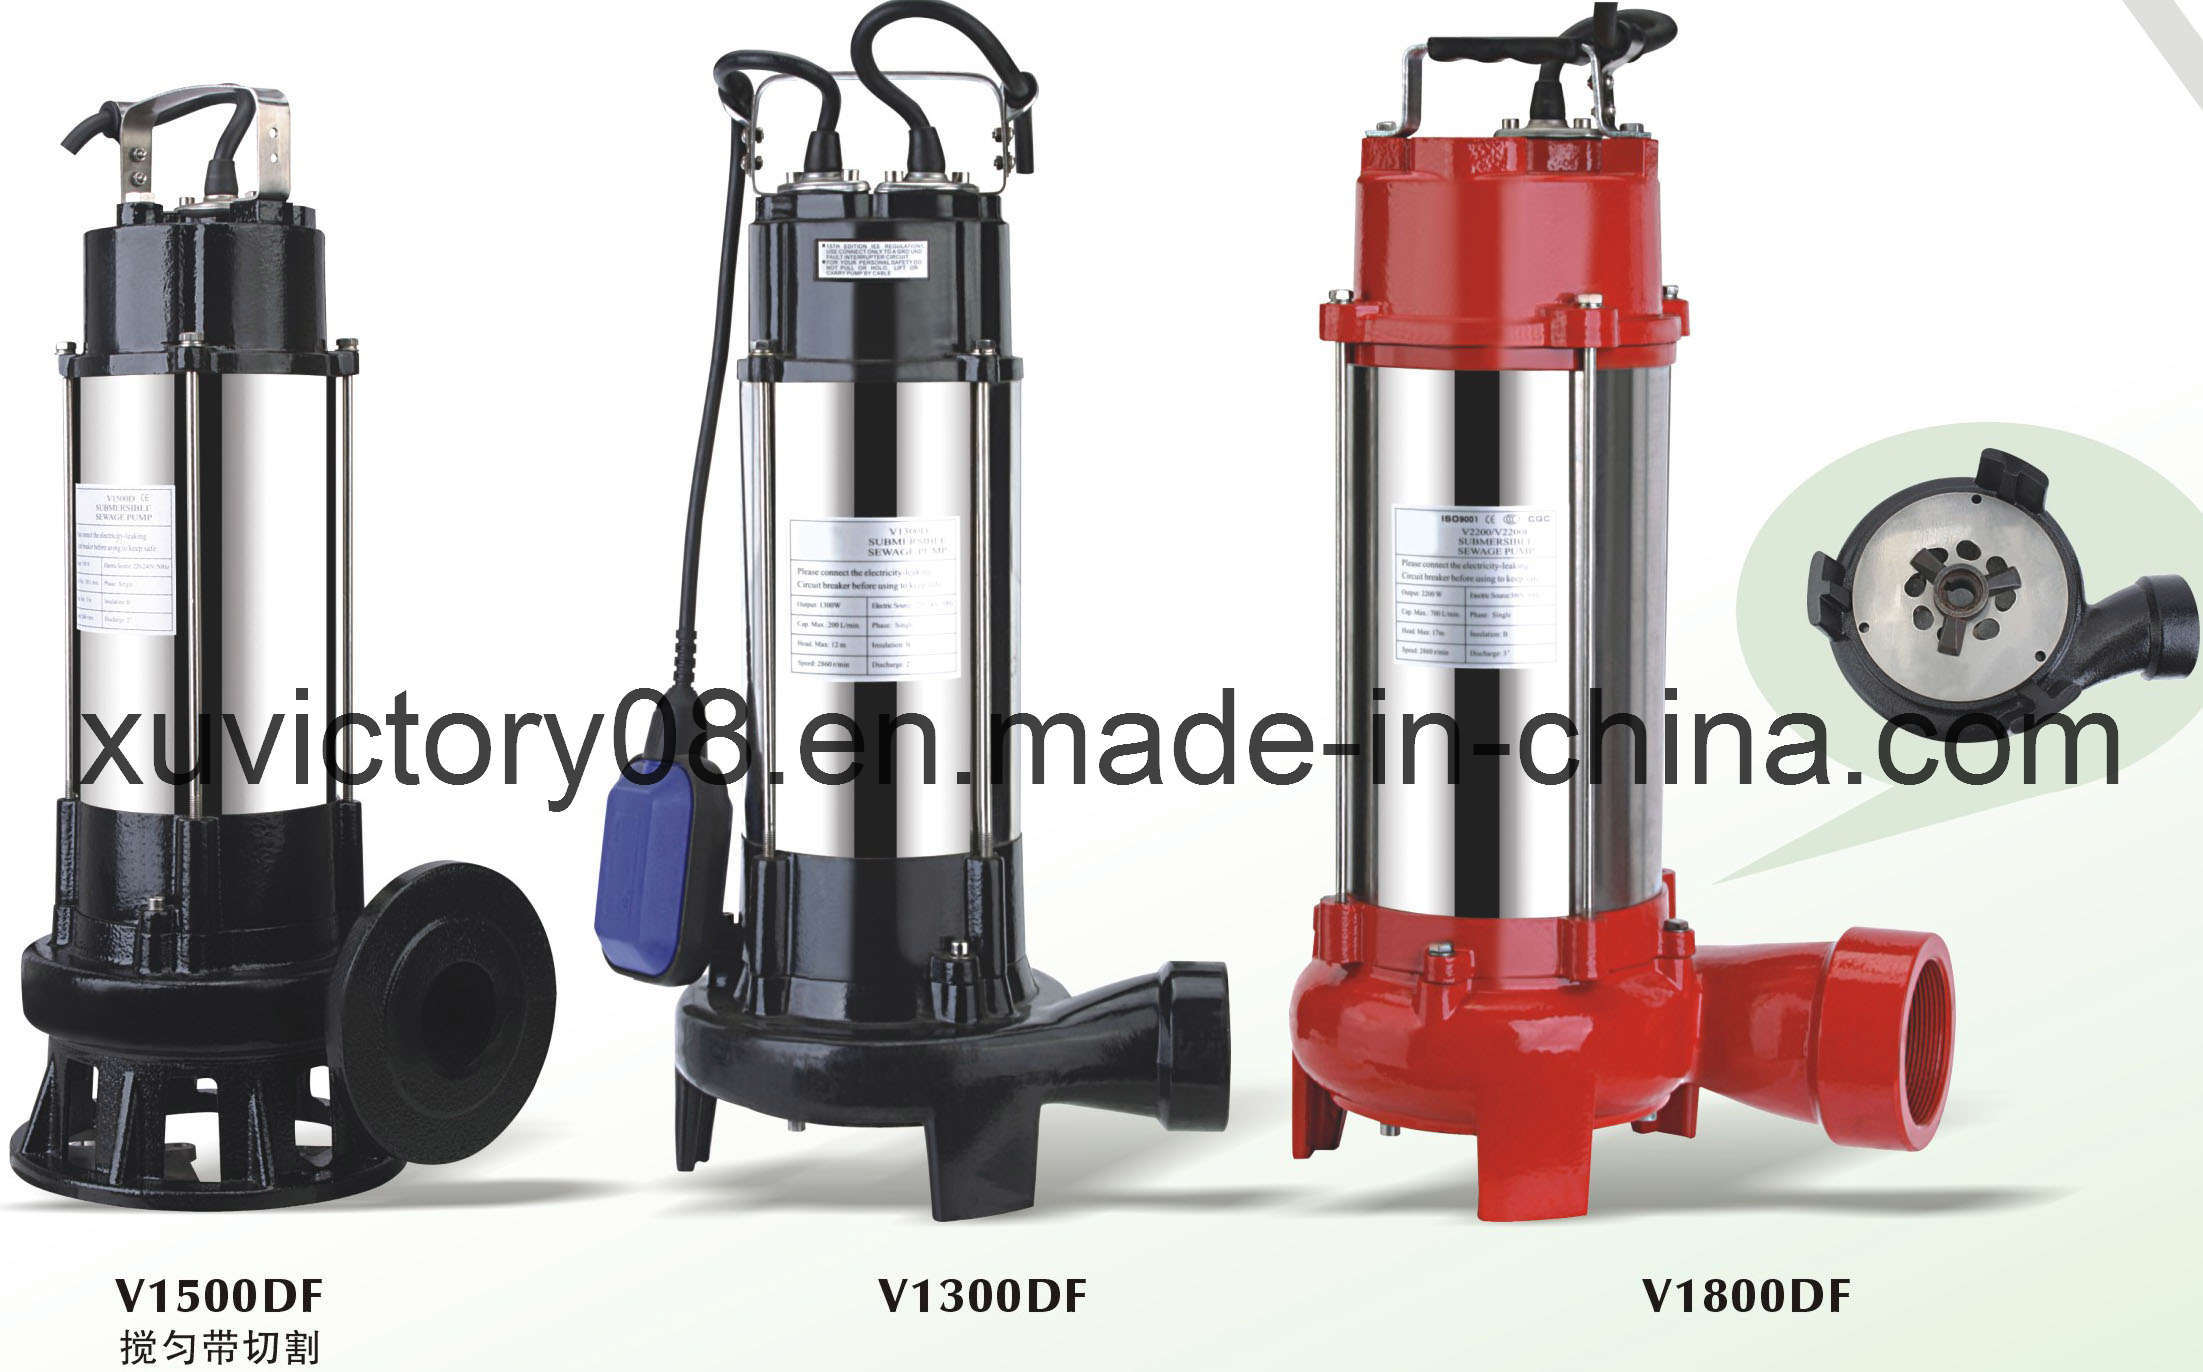 High Qualit Stainless Steel Sewage Cutting Pump (V1800F)